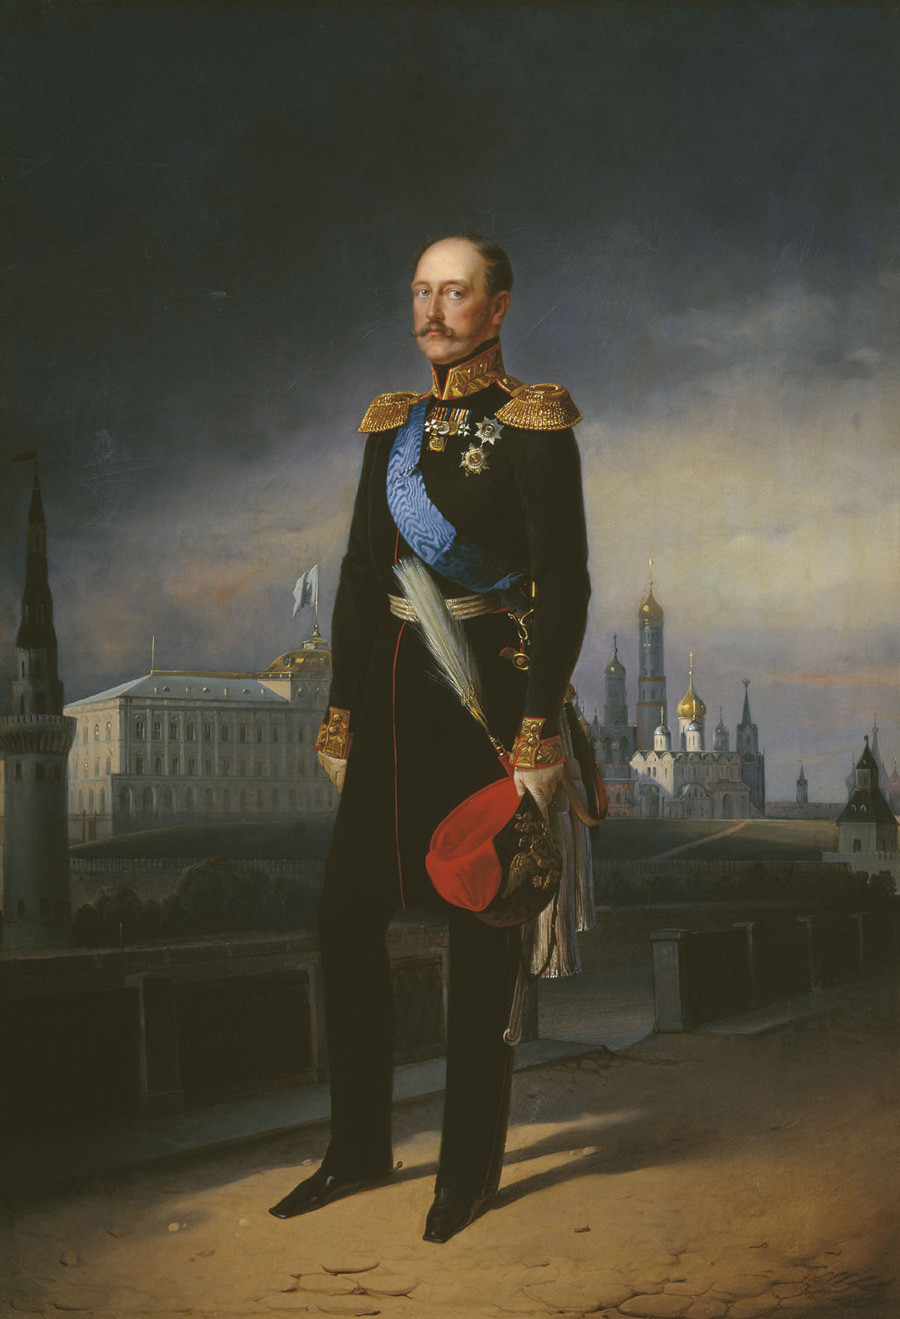 'Portrait of Nicholas I' by Egor Botman